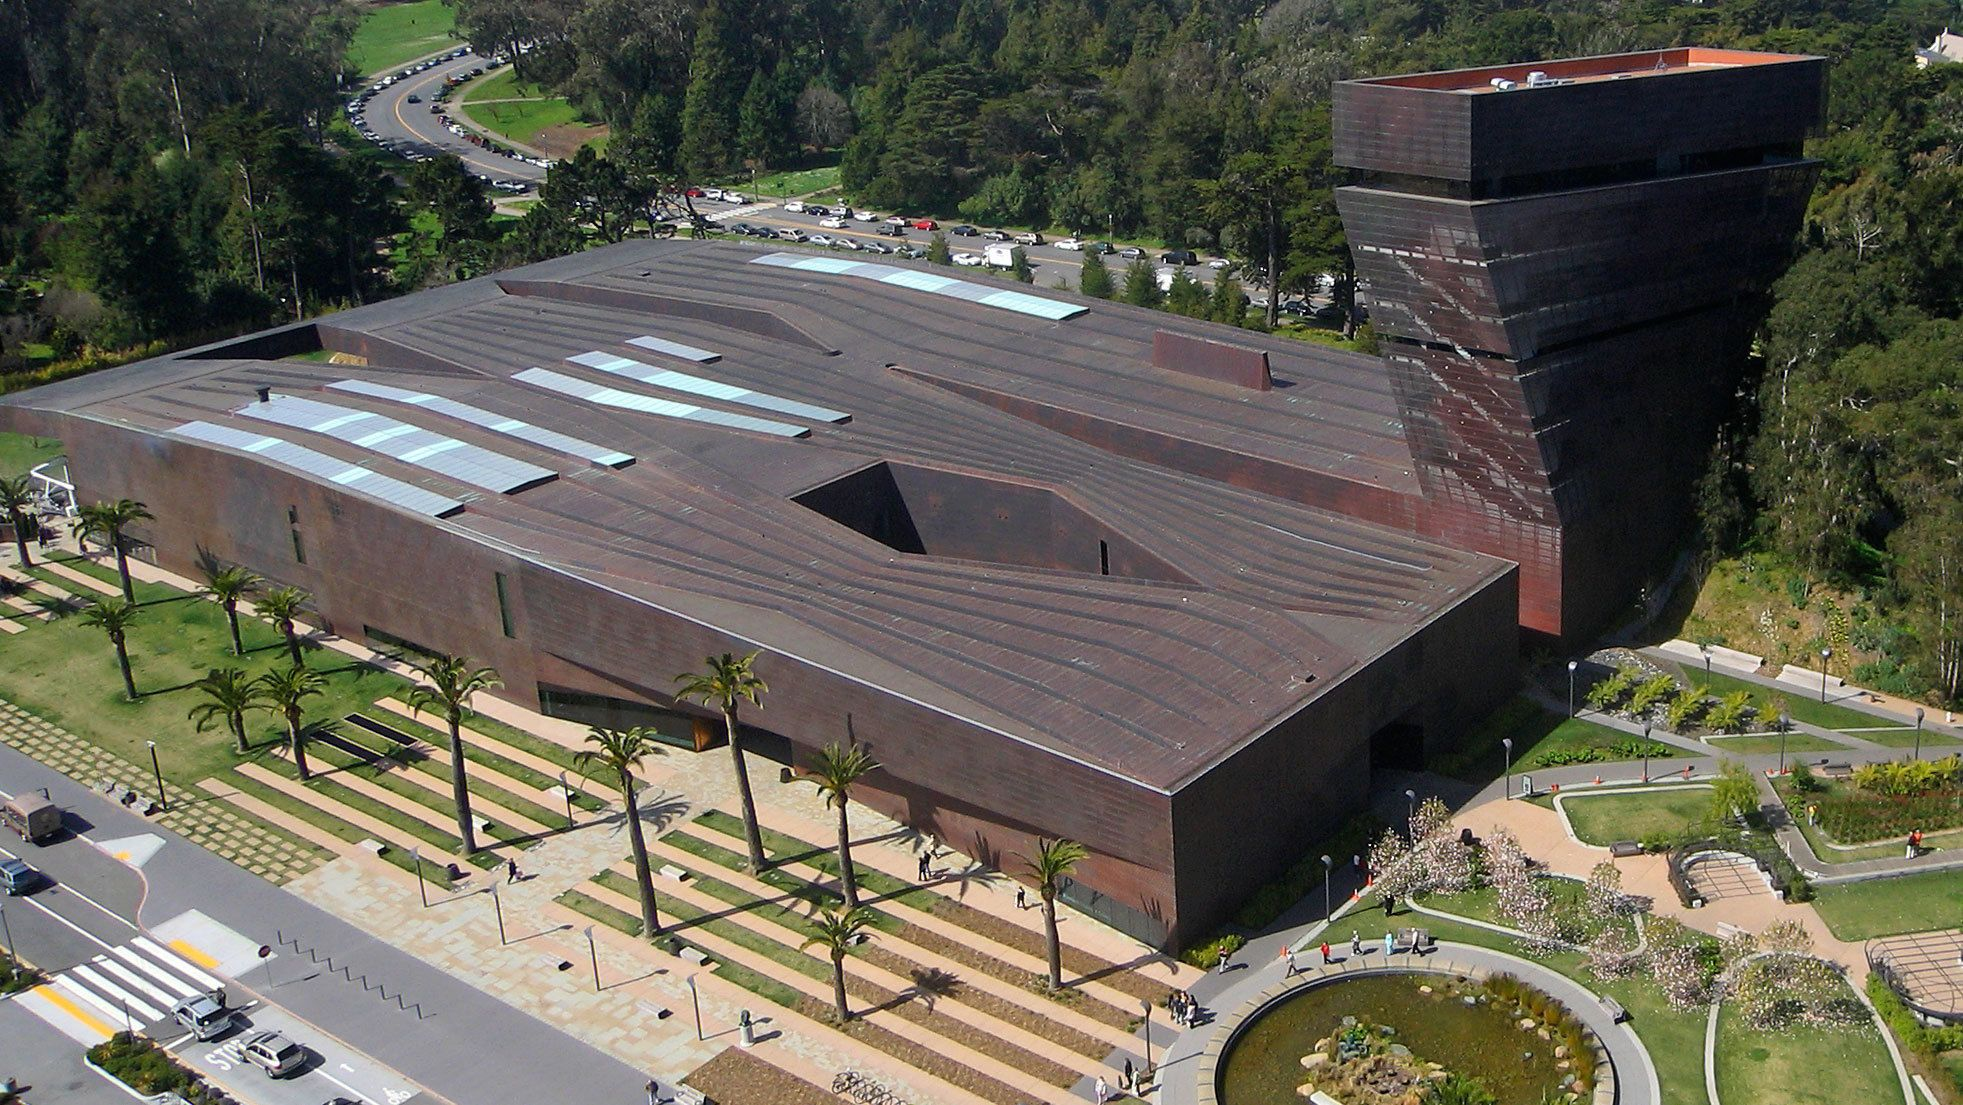 Aerial view of The de Young Museum Admission